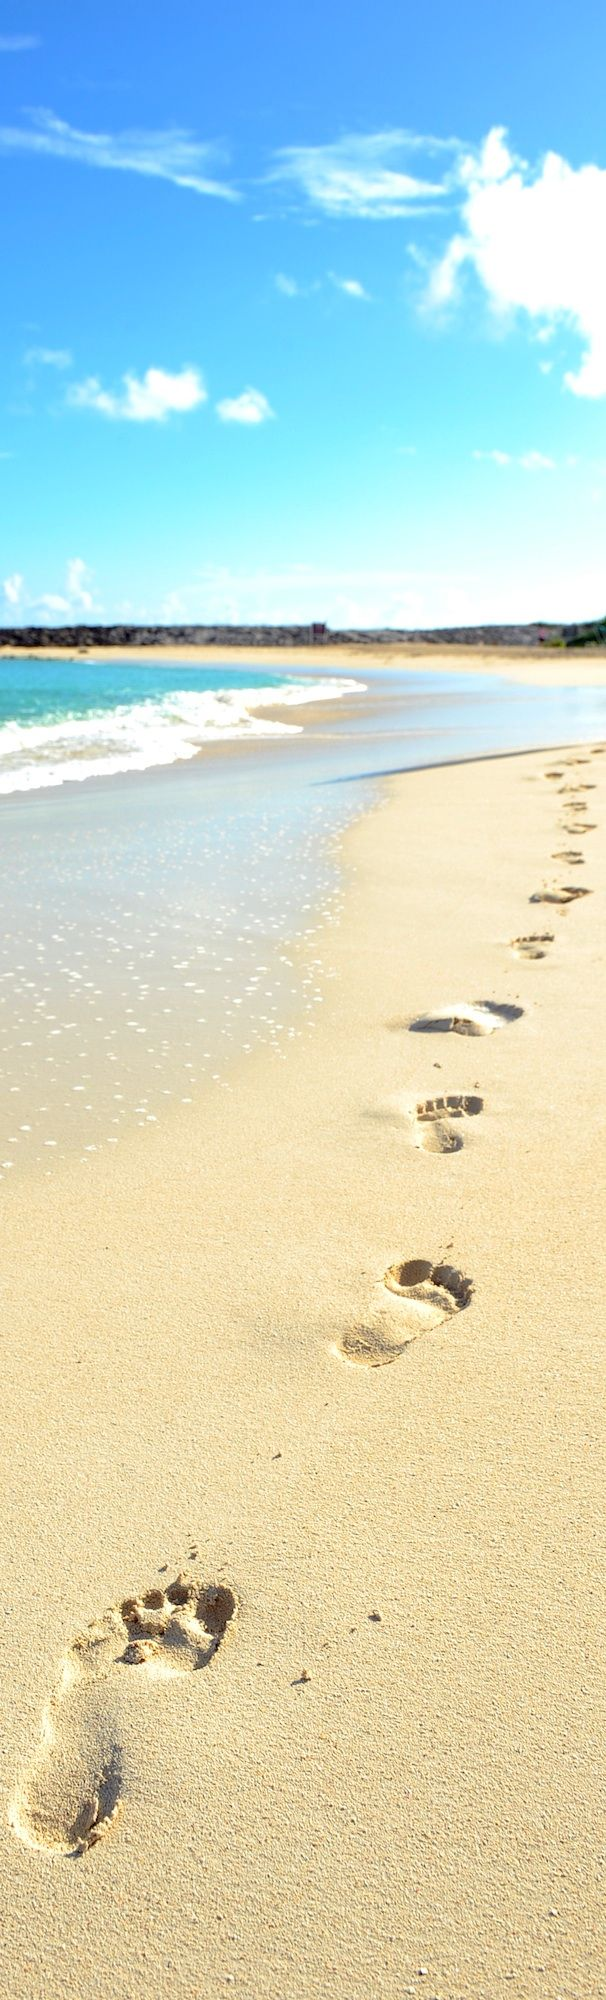 Come take a walk on the beach in The Bahamas! www.facebook.com/loveswish